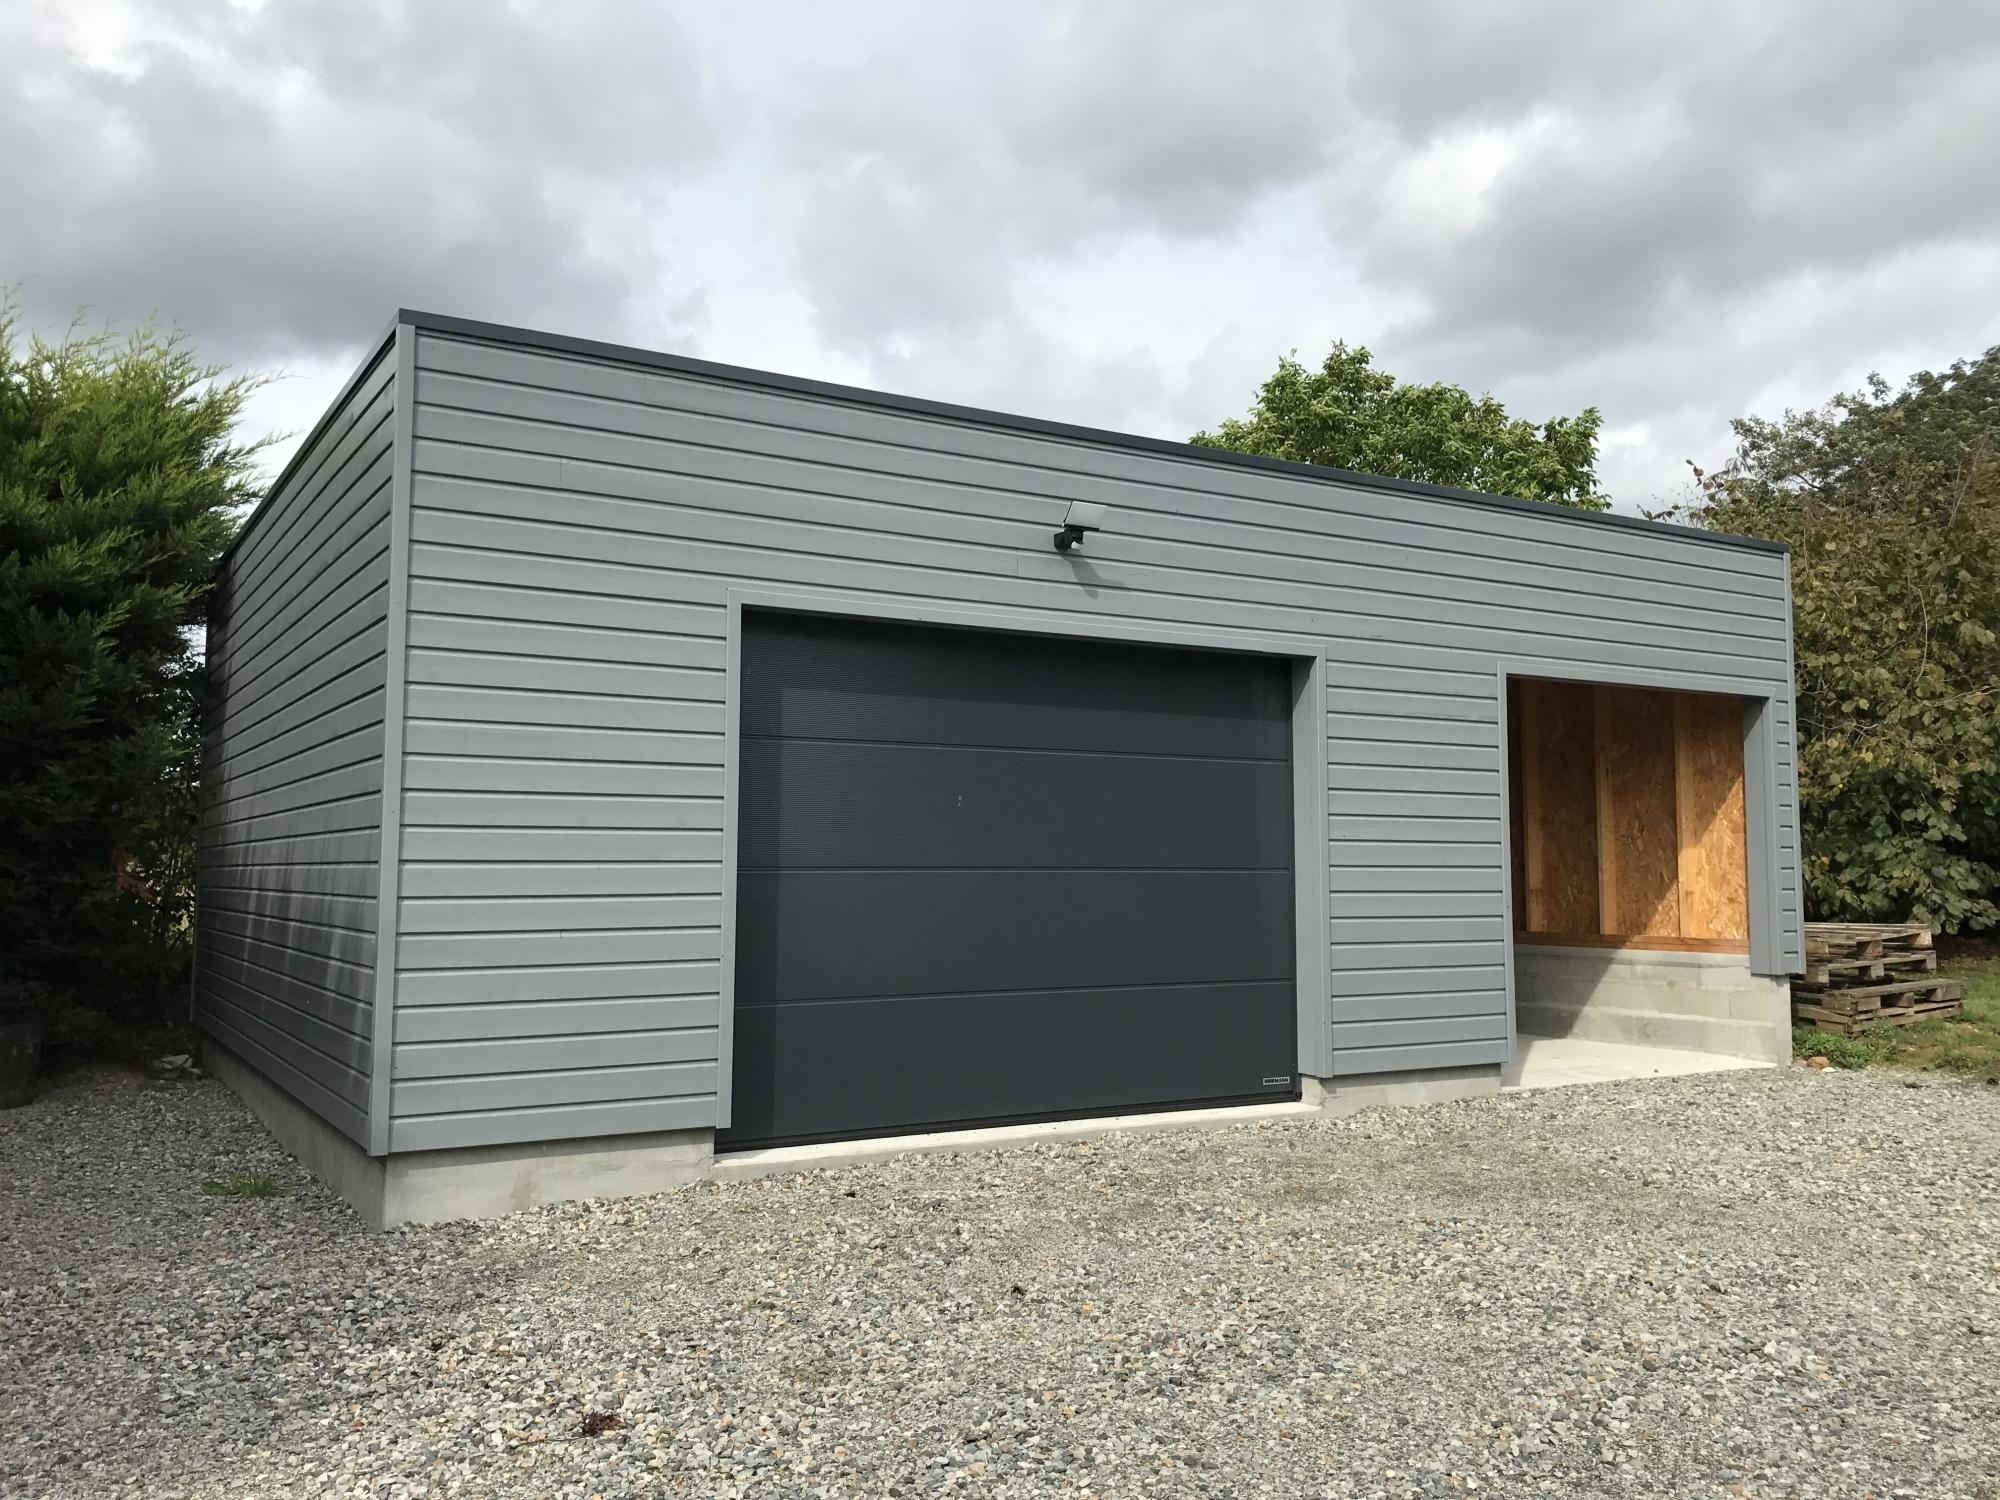 Garages carports ateliers passion bois construction - Structure en bois pour garage ...